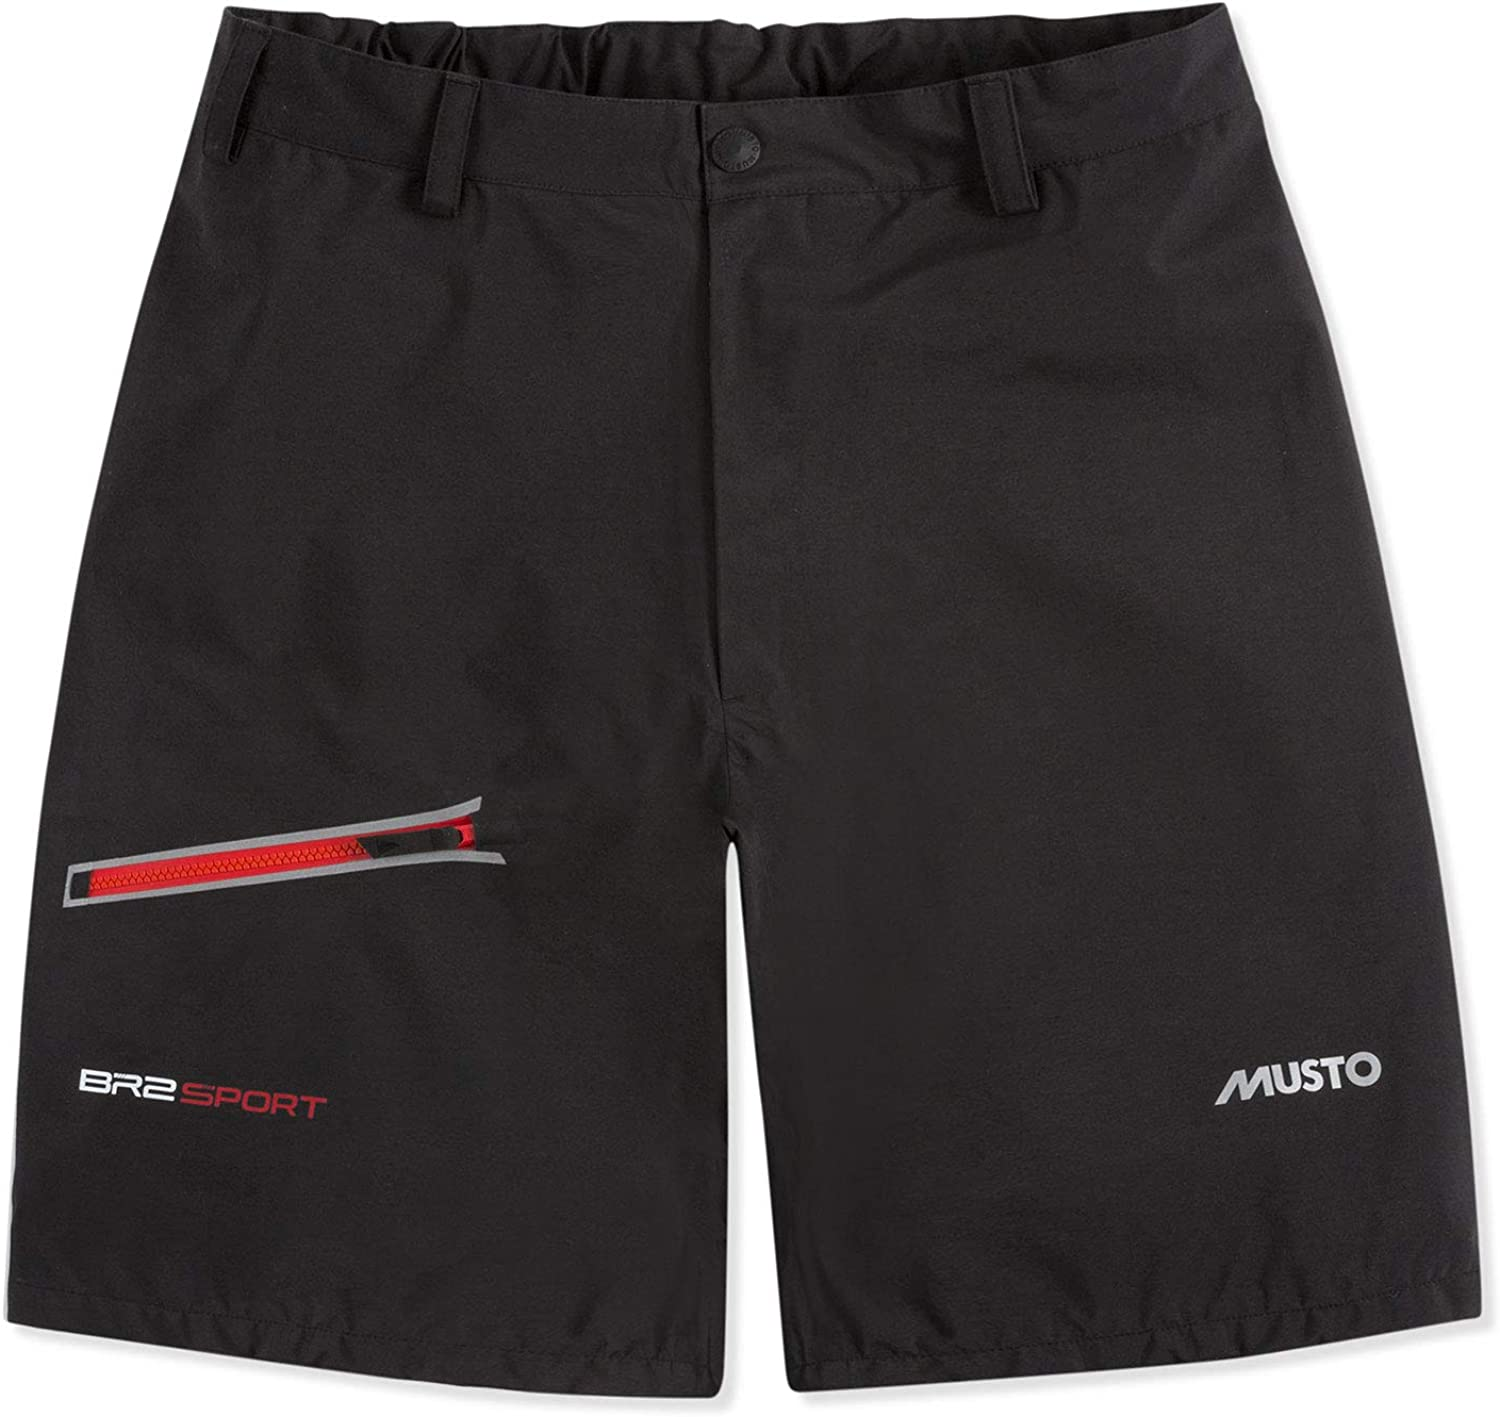 Musto BR2 Yacht Sailing and Boating Sport Sailing Boating Watersports Shorts Black SMST013Lightweight Breathable